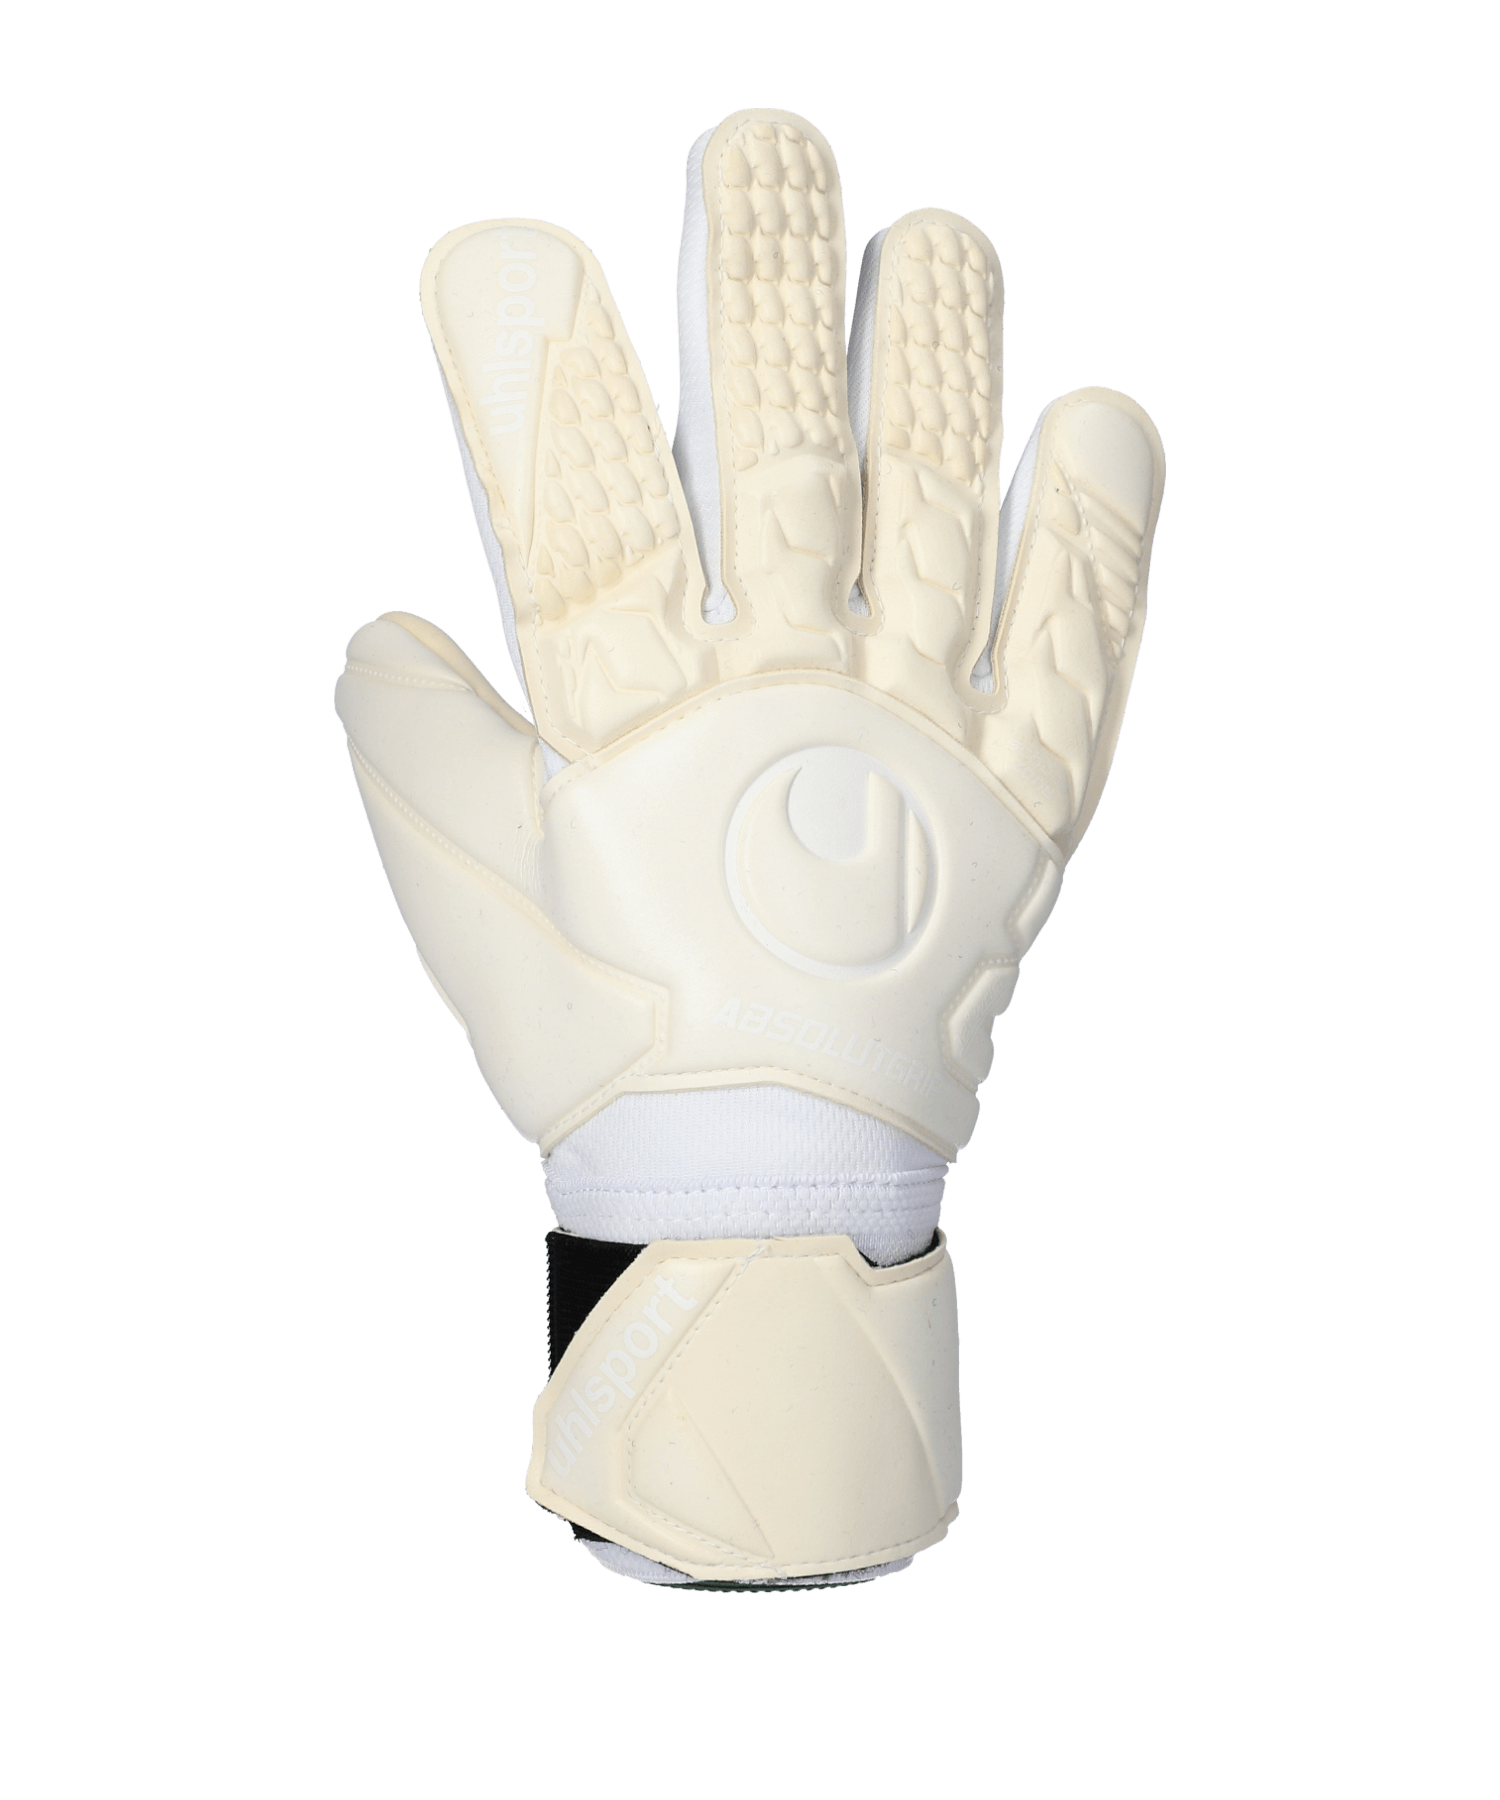 Uhlsport Comfort Absolutgrip HN TW-Hand